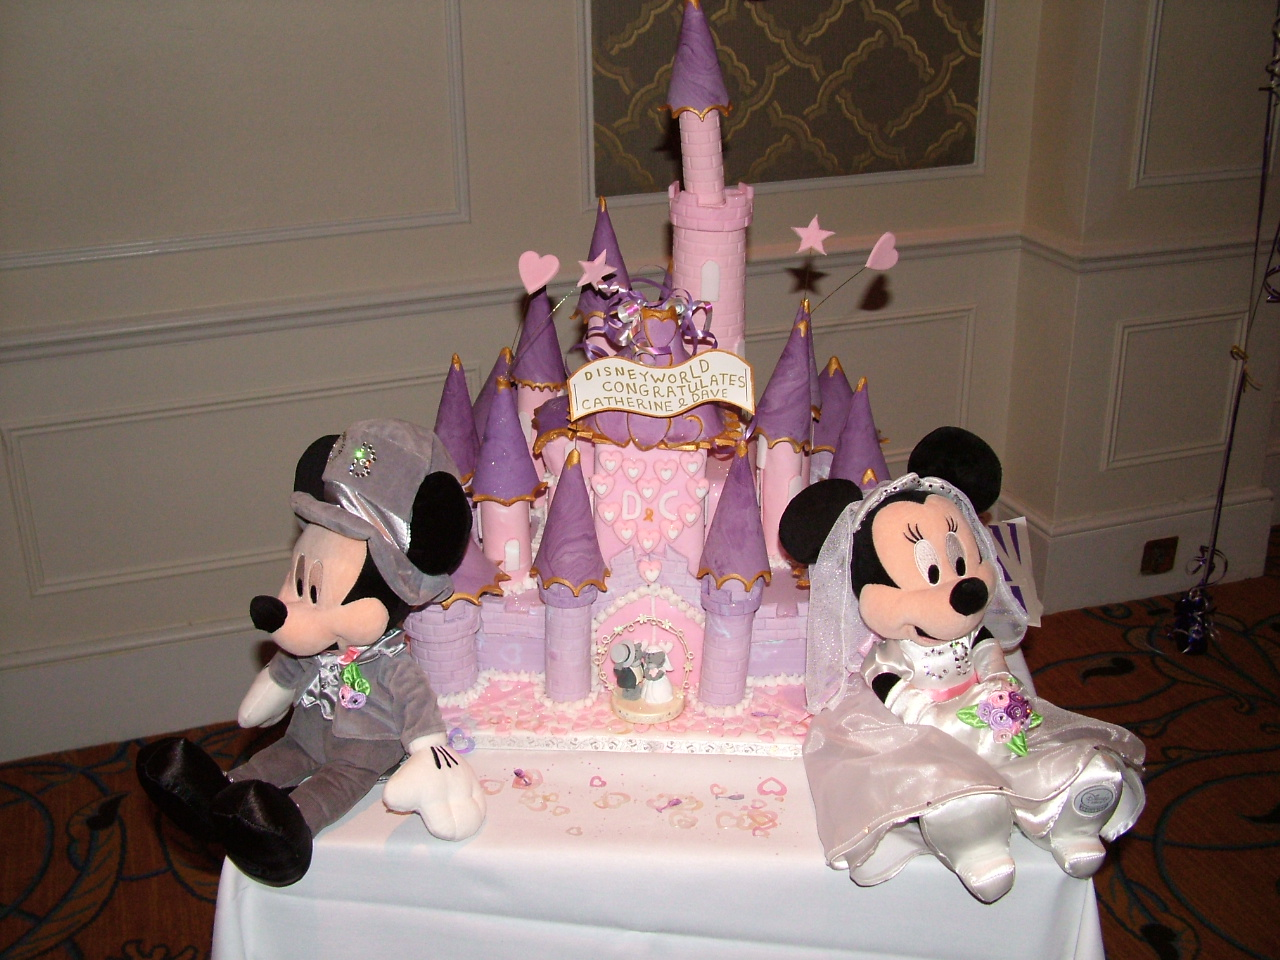 castle cakes decoration ideas little birthday cakes. Black Bedroom Furniture Sets. Home Design Ideas